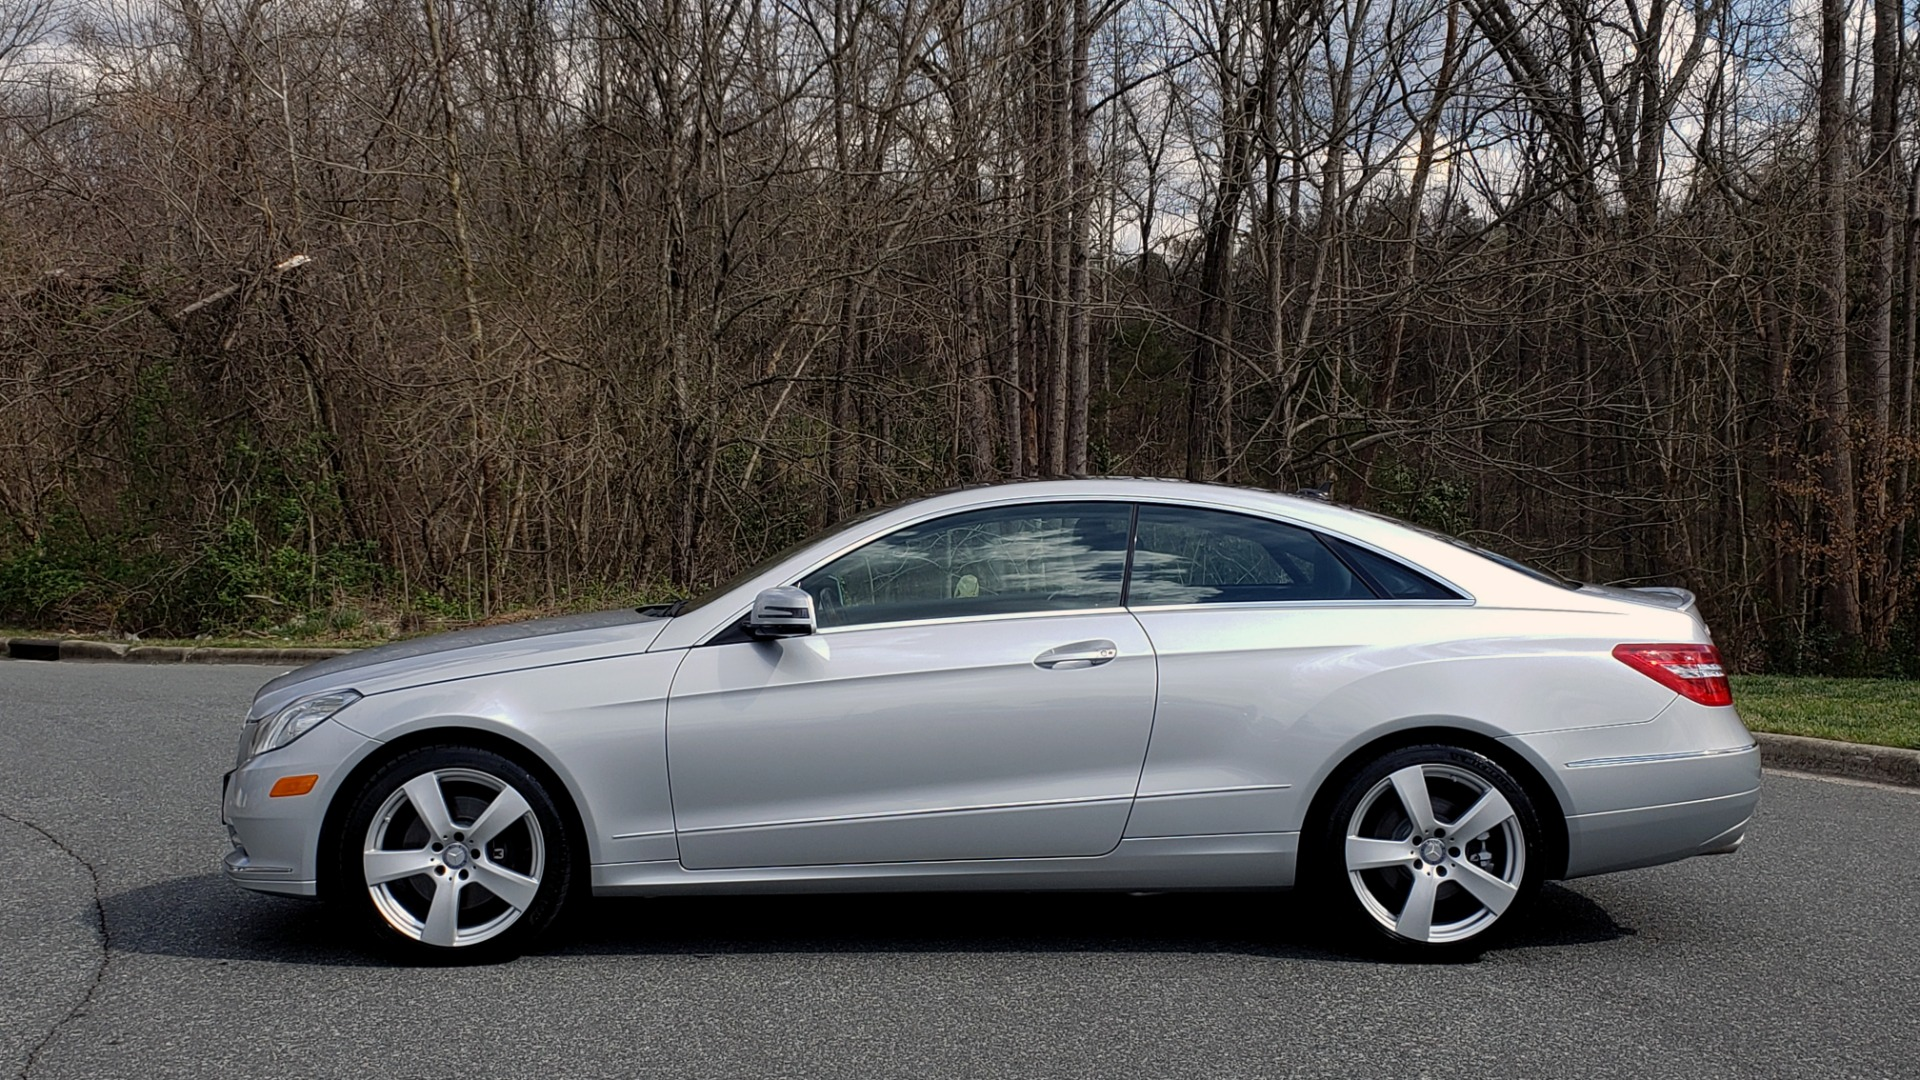 Used 2013 Mercedes-Benz E-CLASS E 350 COUPE PREM / NAV / PANO-ROFF / KEYLESS-GO / REARVIEW for sale Sold at Formula Imports in Charlotte NC 28227 3